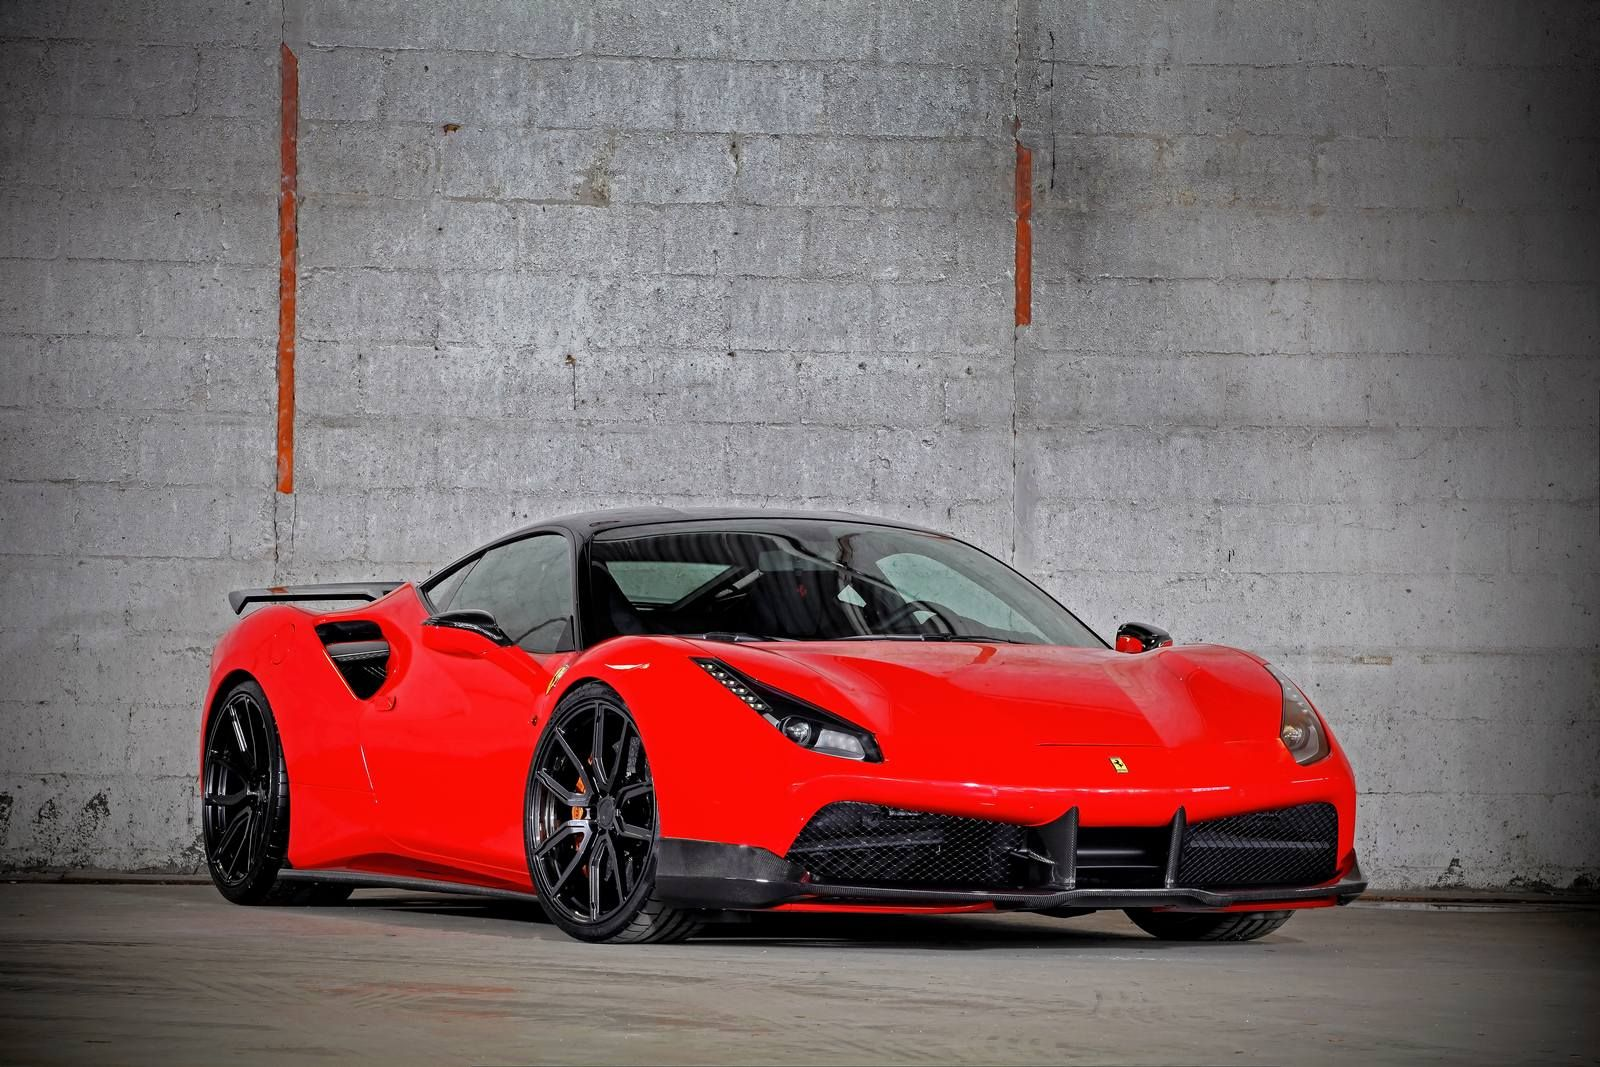 Official 900hp ferrari 488 gtb by vos performance by niels stolte 3rd may